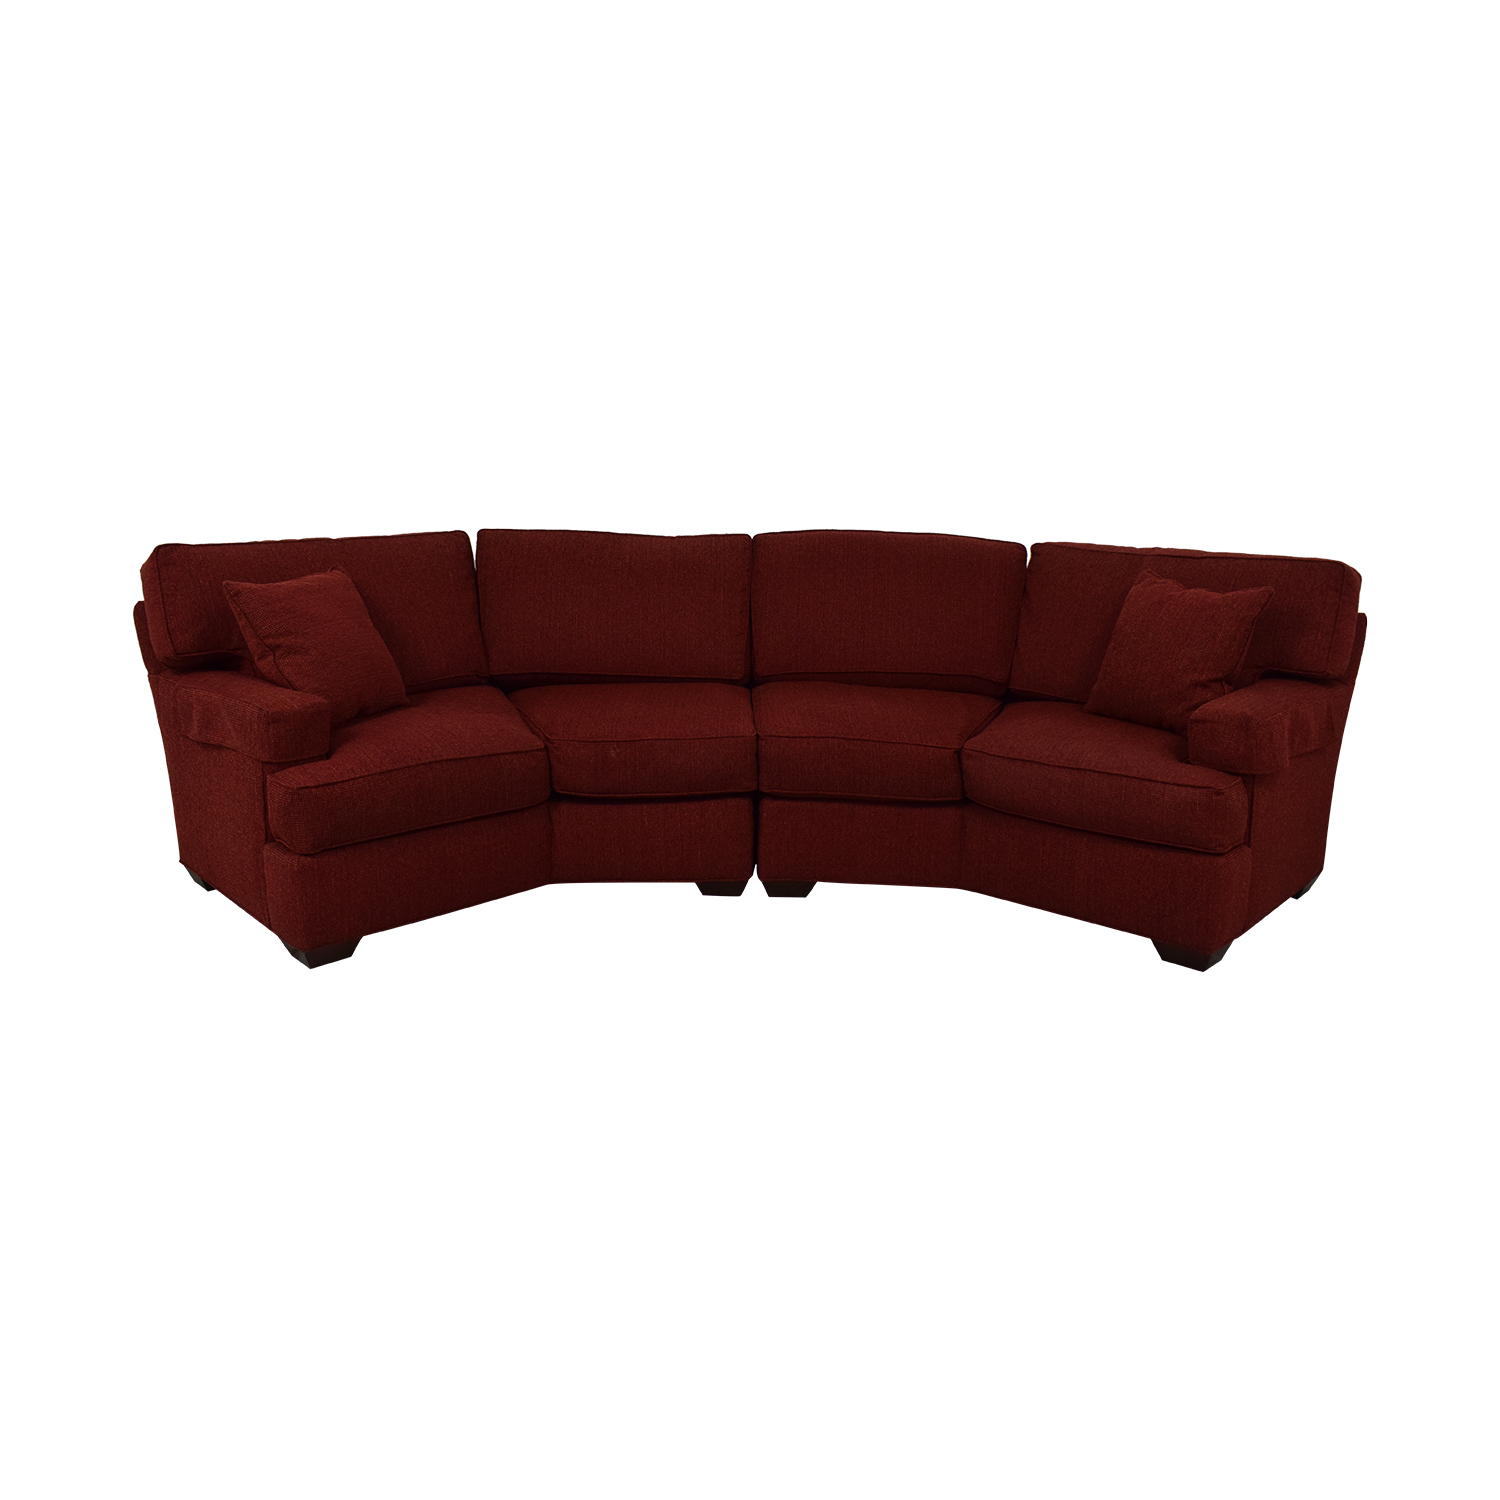 79% OFF - Pearson Pearson Red Wedge Sectional Sofa / Sofas